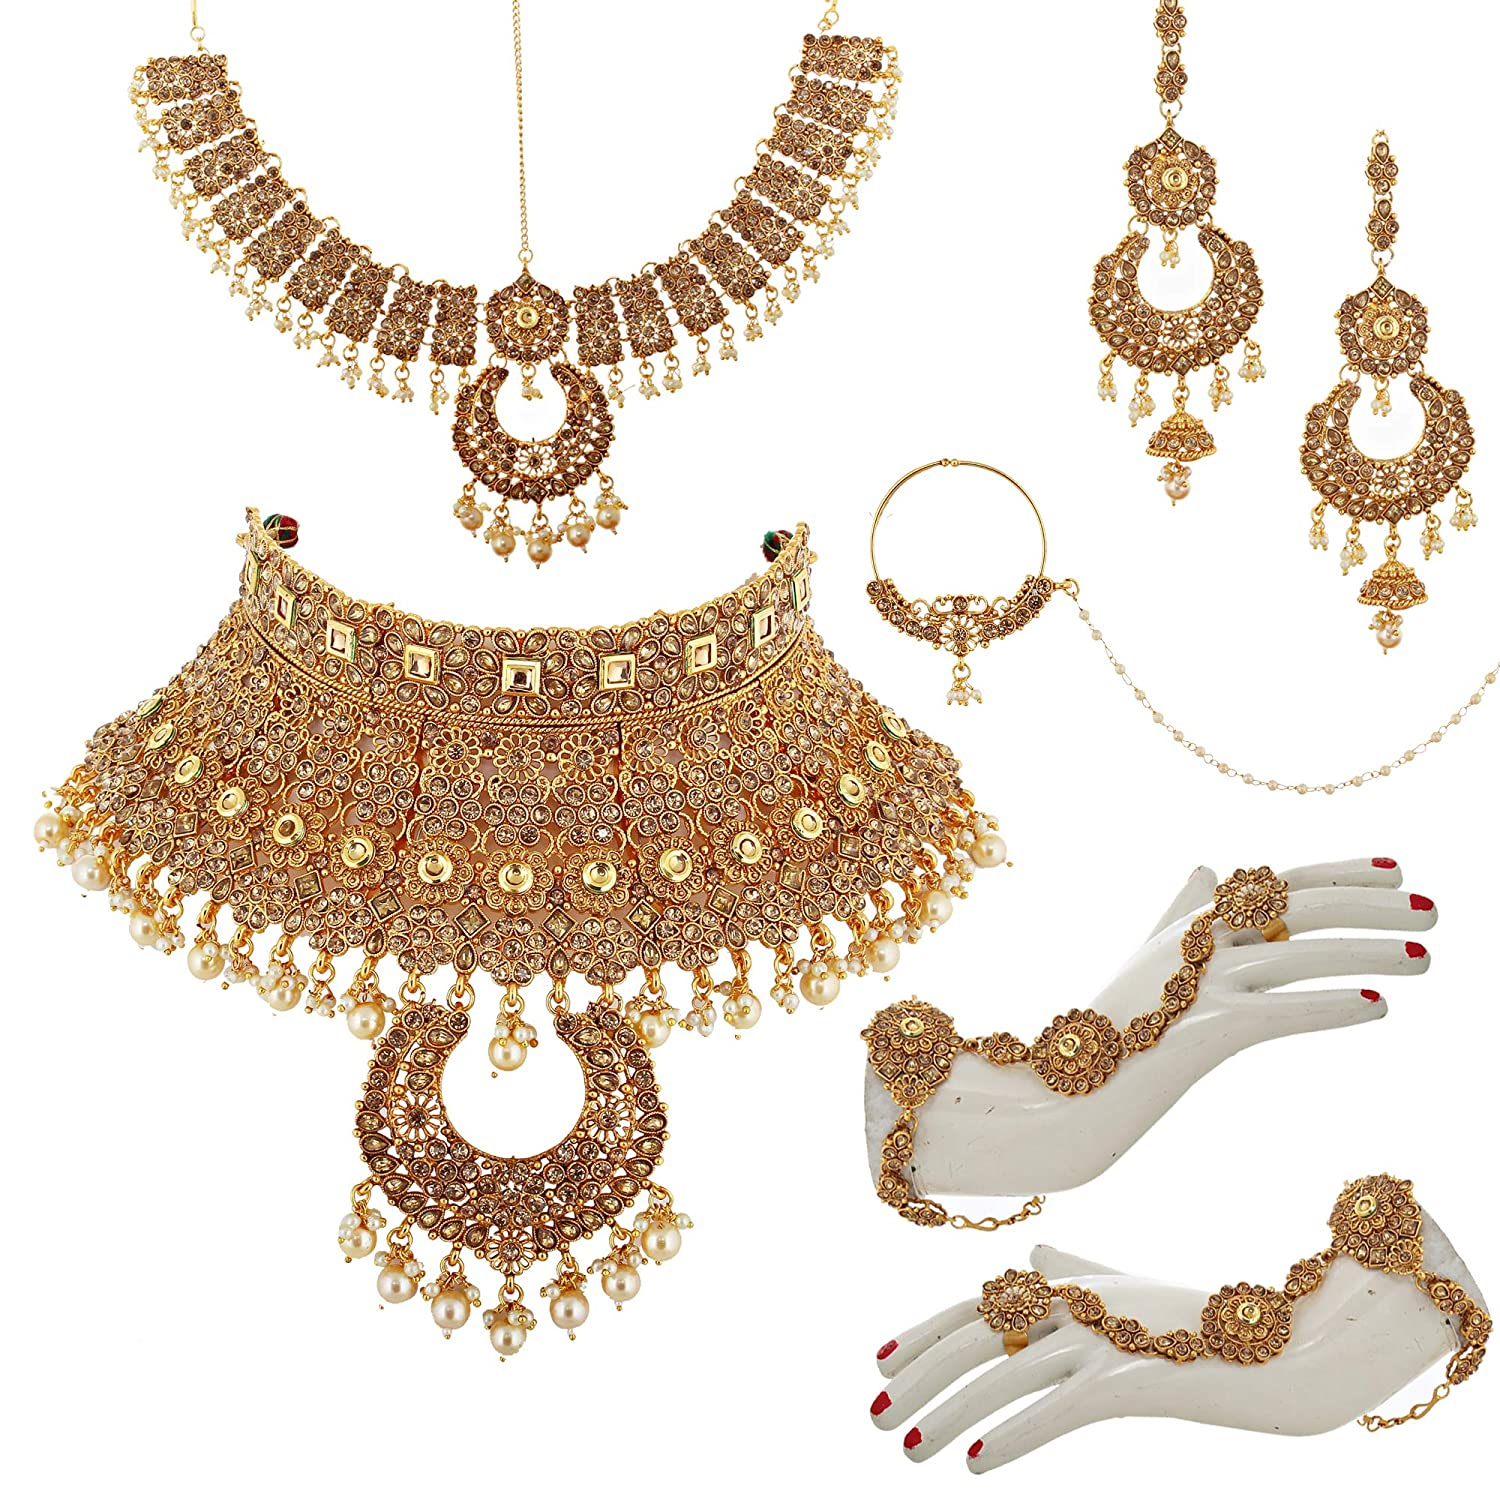 Buy Lucky Jewellery Bridal Dulhan Golden Red Color Alloy Gold Plated Jewellery Set For Girls Women 3960 P3zr 235sm Lct Red At Amazon In